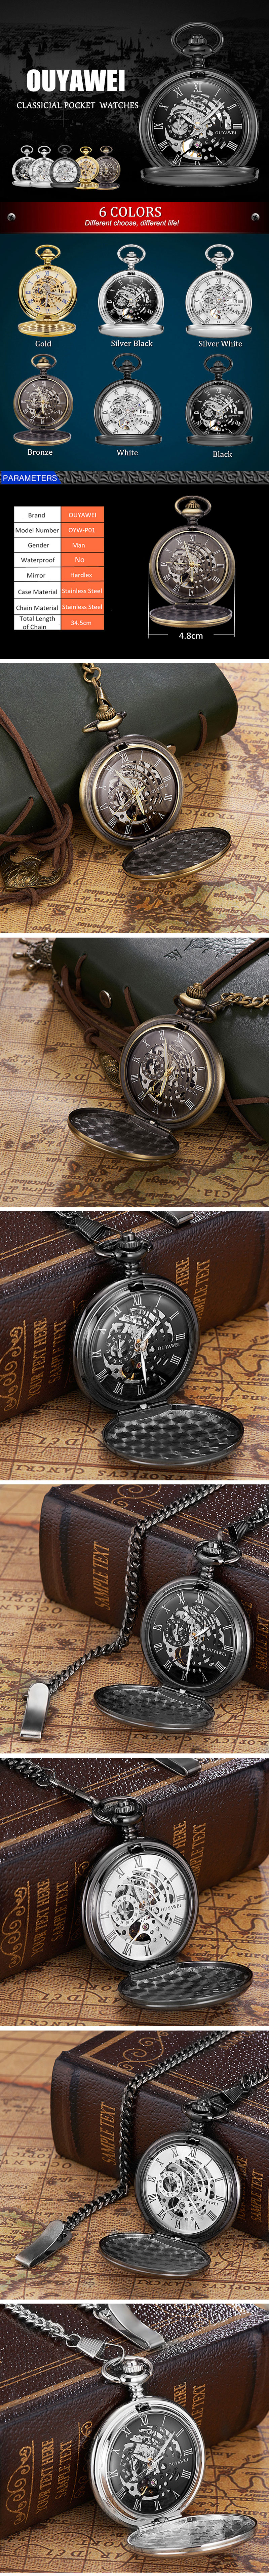 OUYAWEI P01 Retro Vintage Men Mechanical Pocket Watches